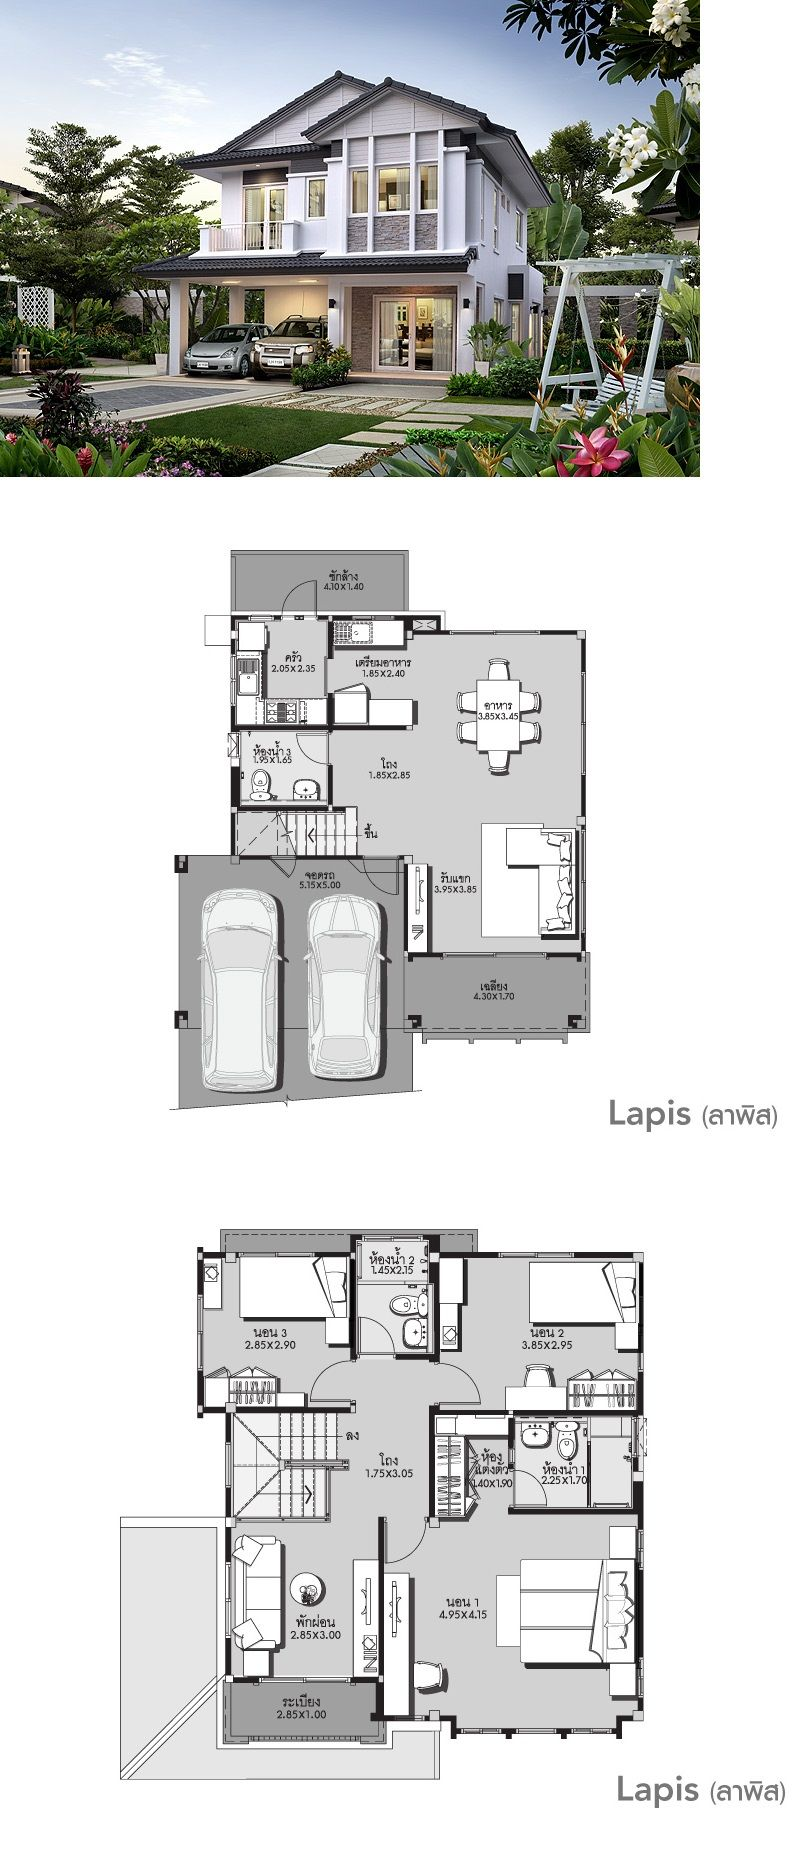 Land and houses modern house plans dream small also pin by khilda hilawah on home decor pinterest rh